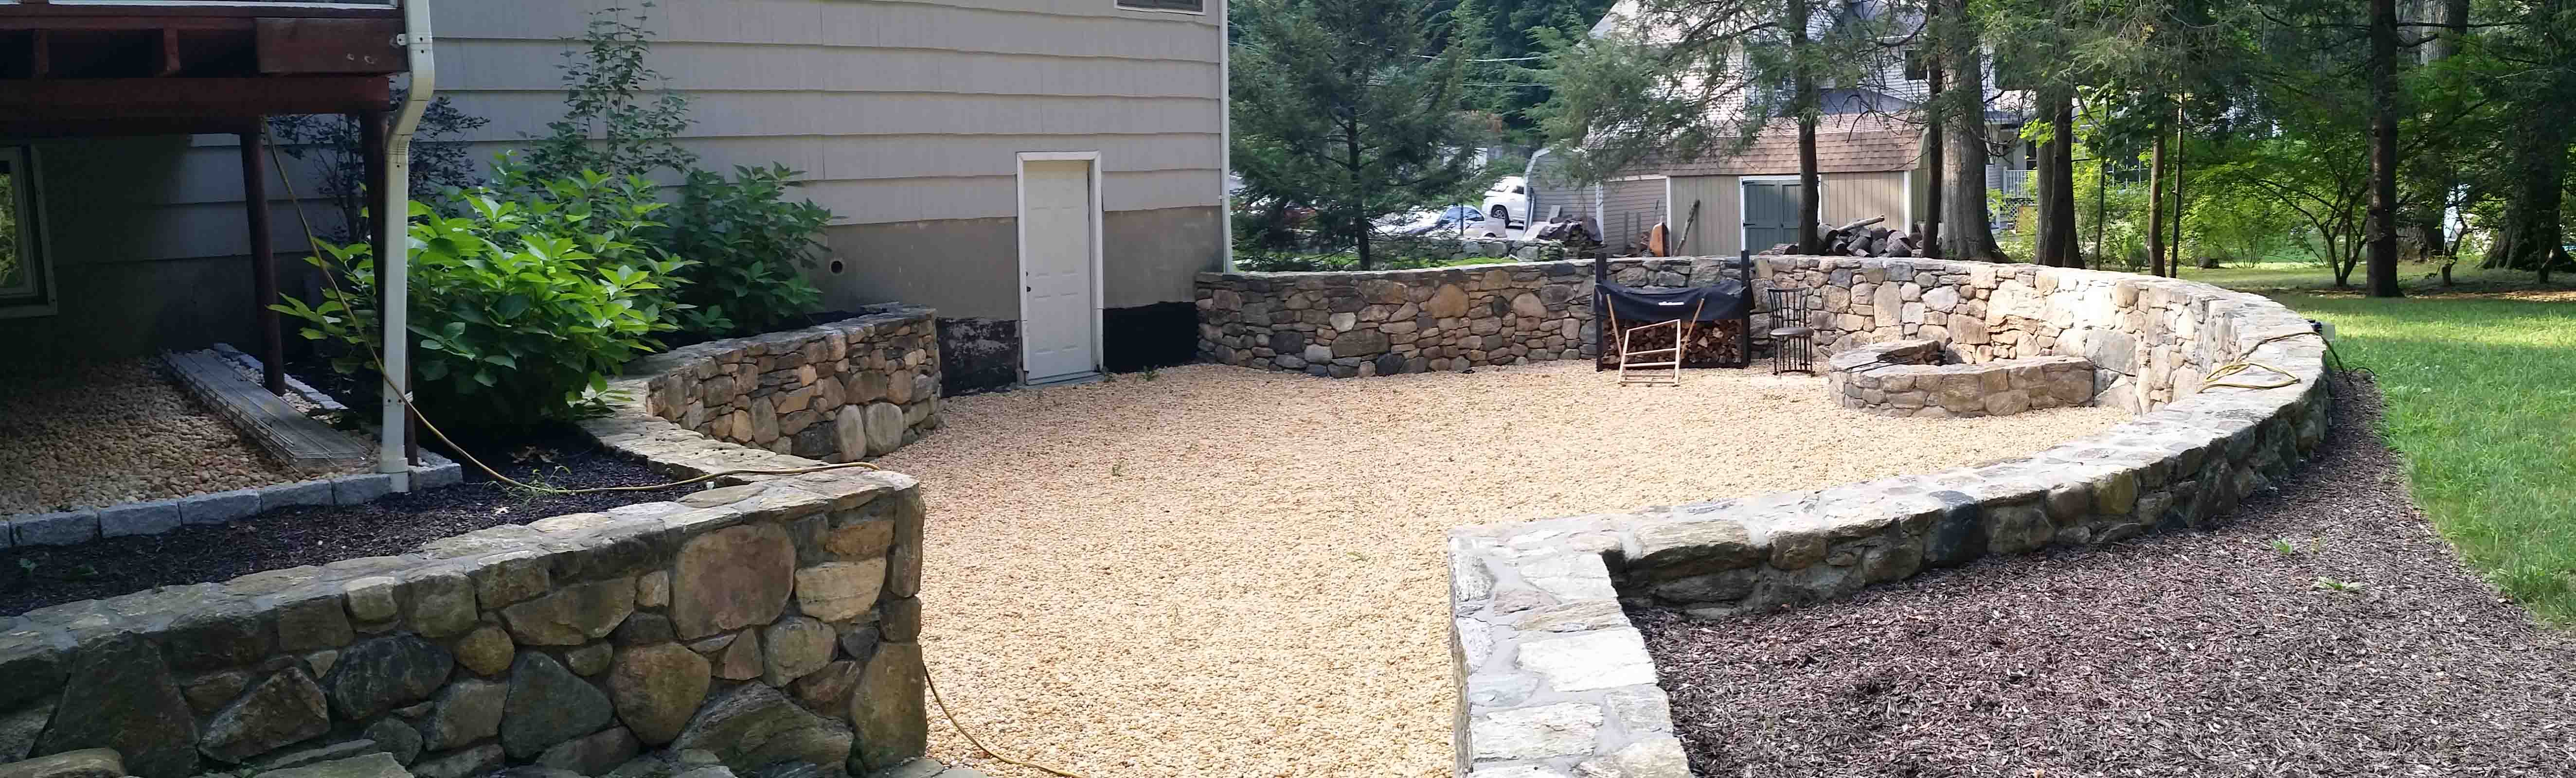 Stone Wall & Fire Pit